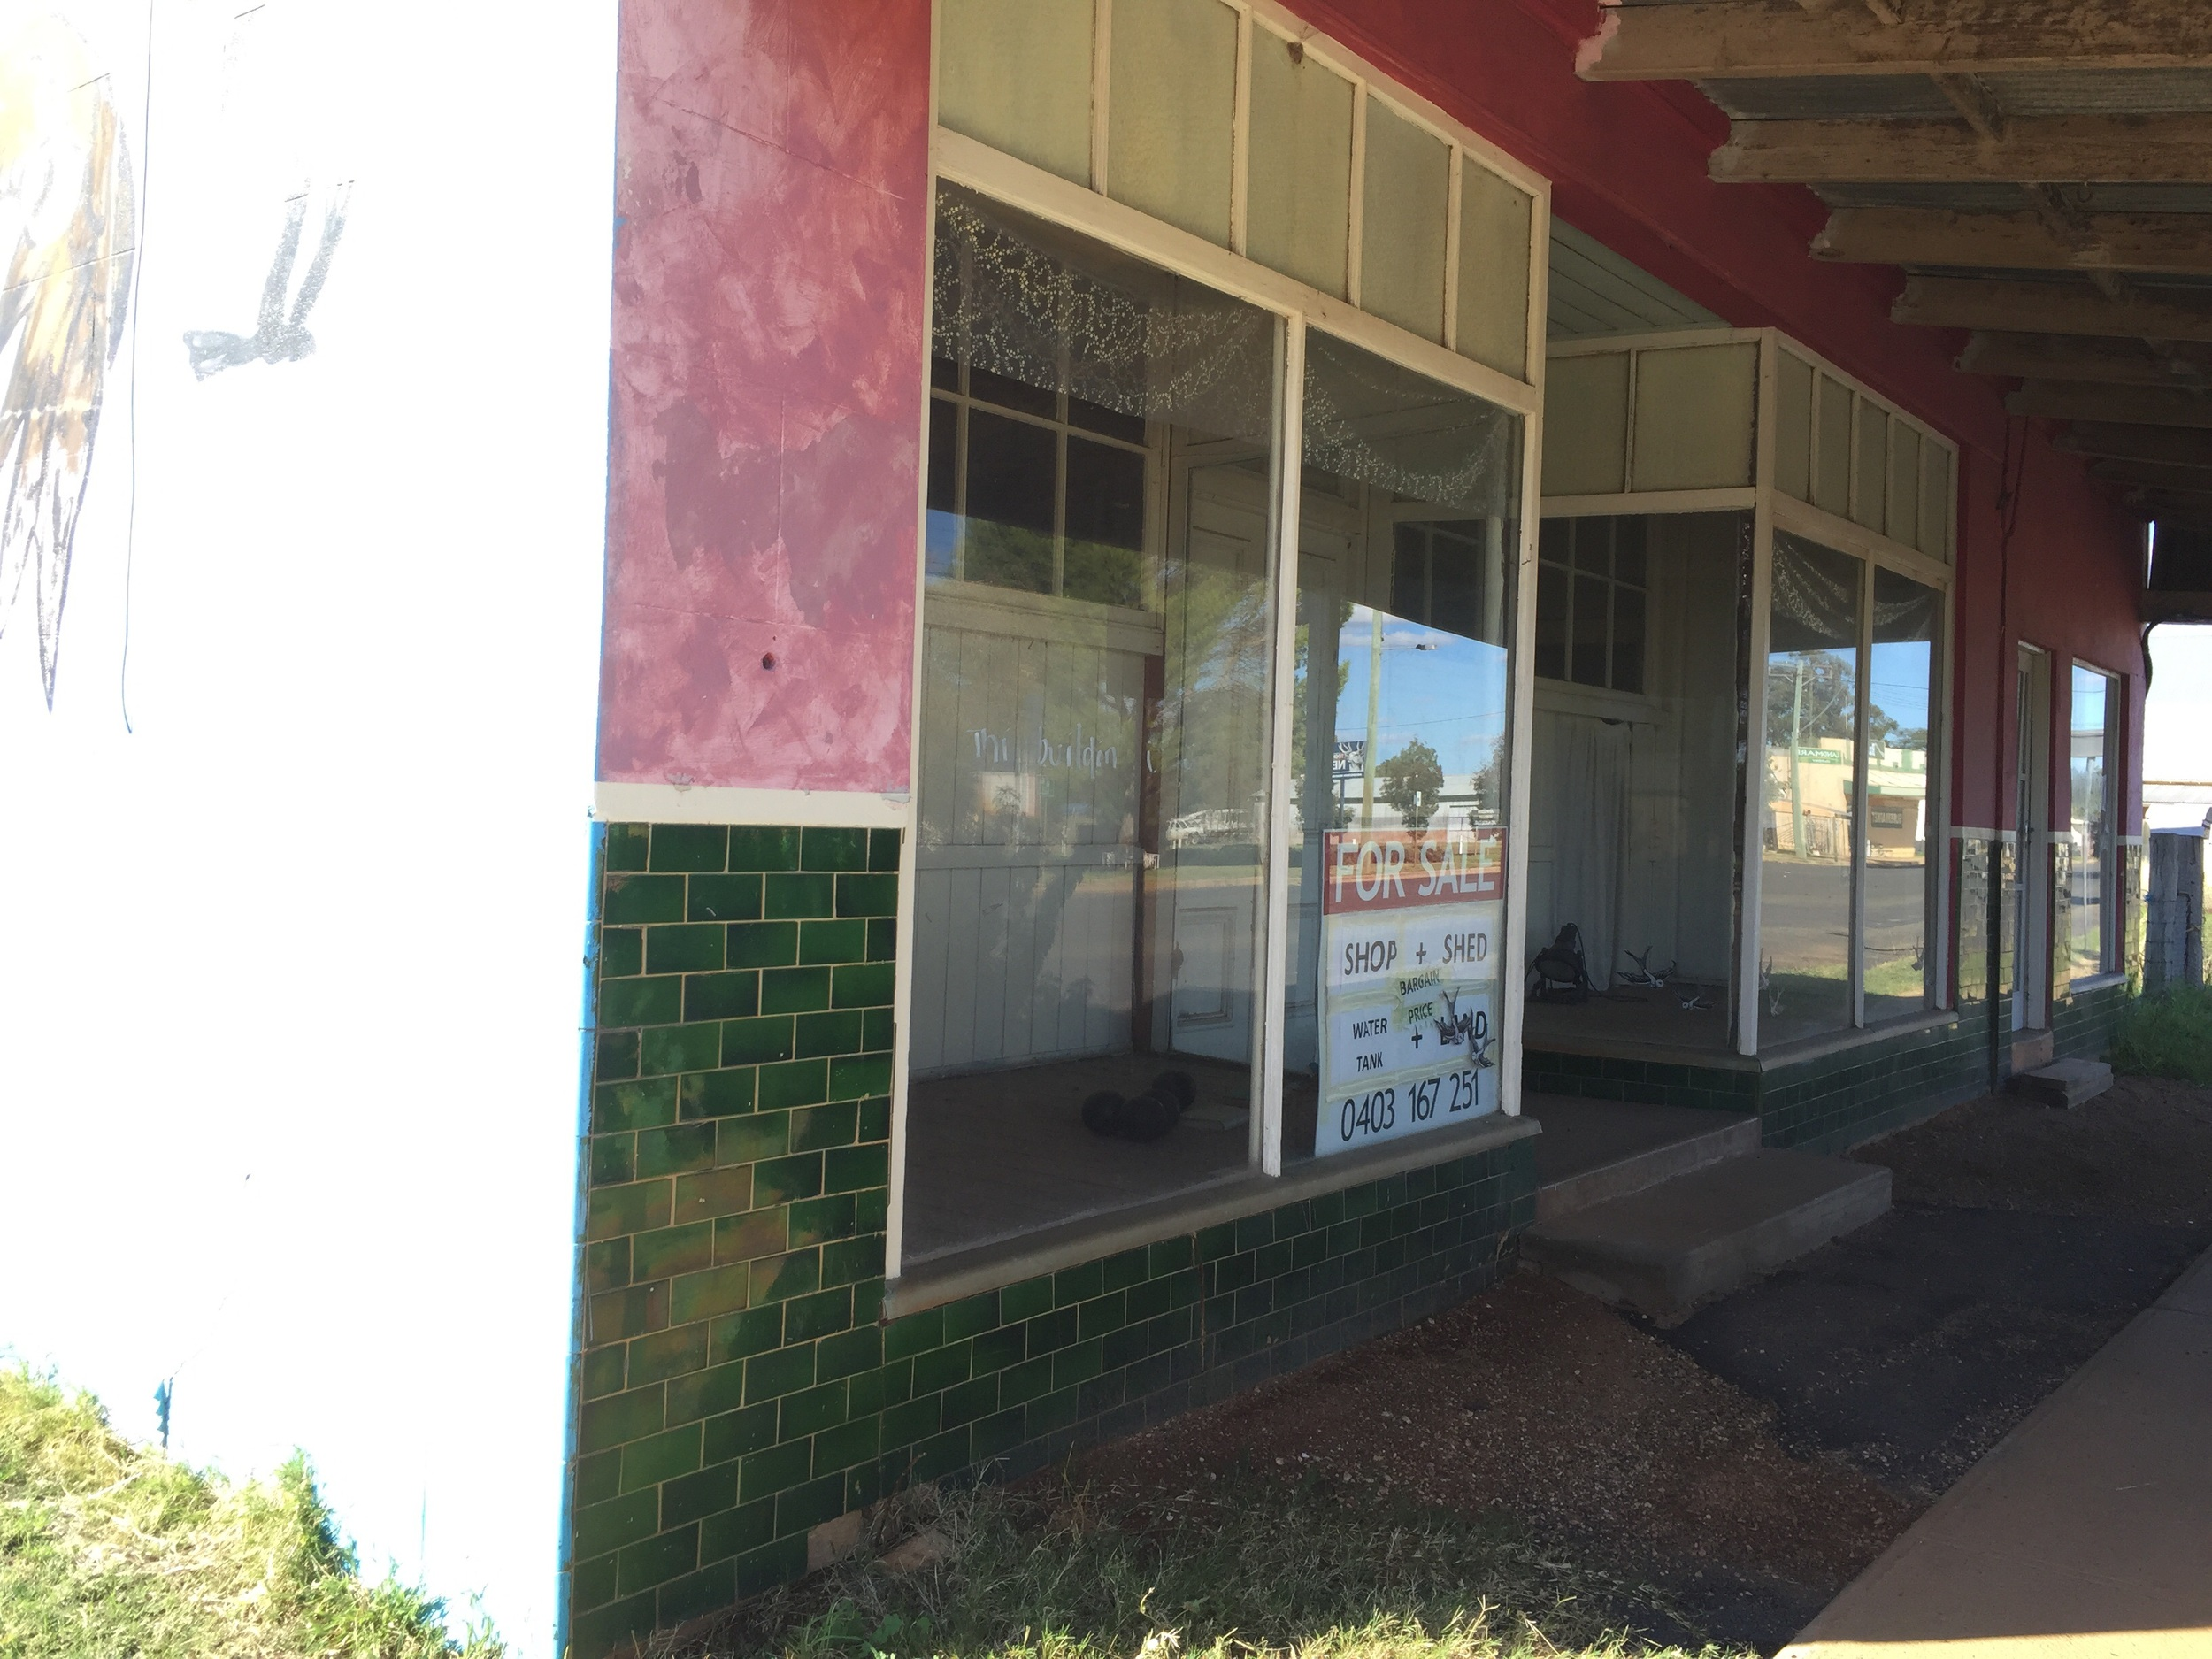 Many shops are empty and up for sale in this town which must be hard for the locals